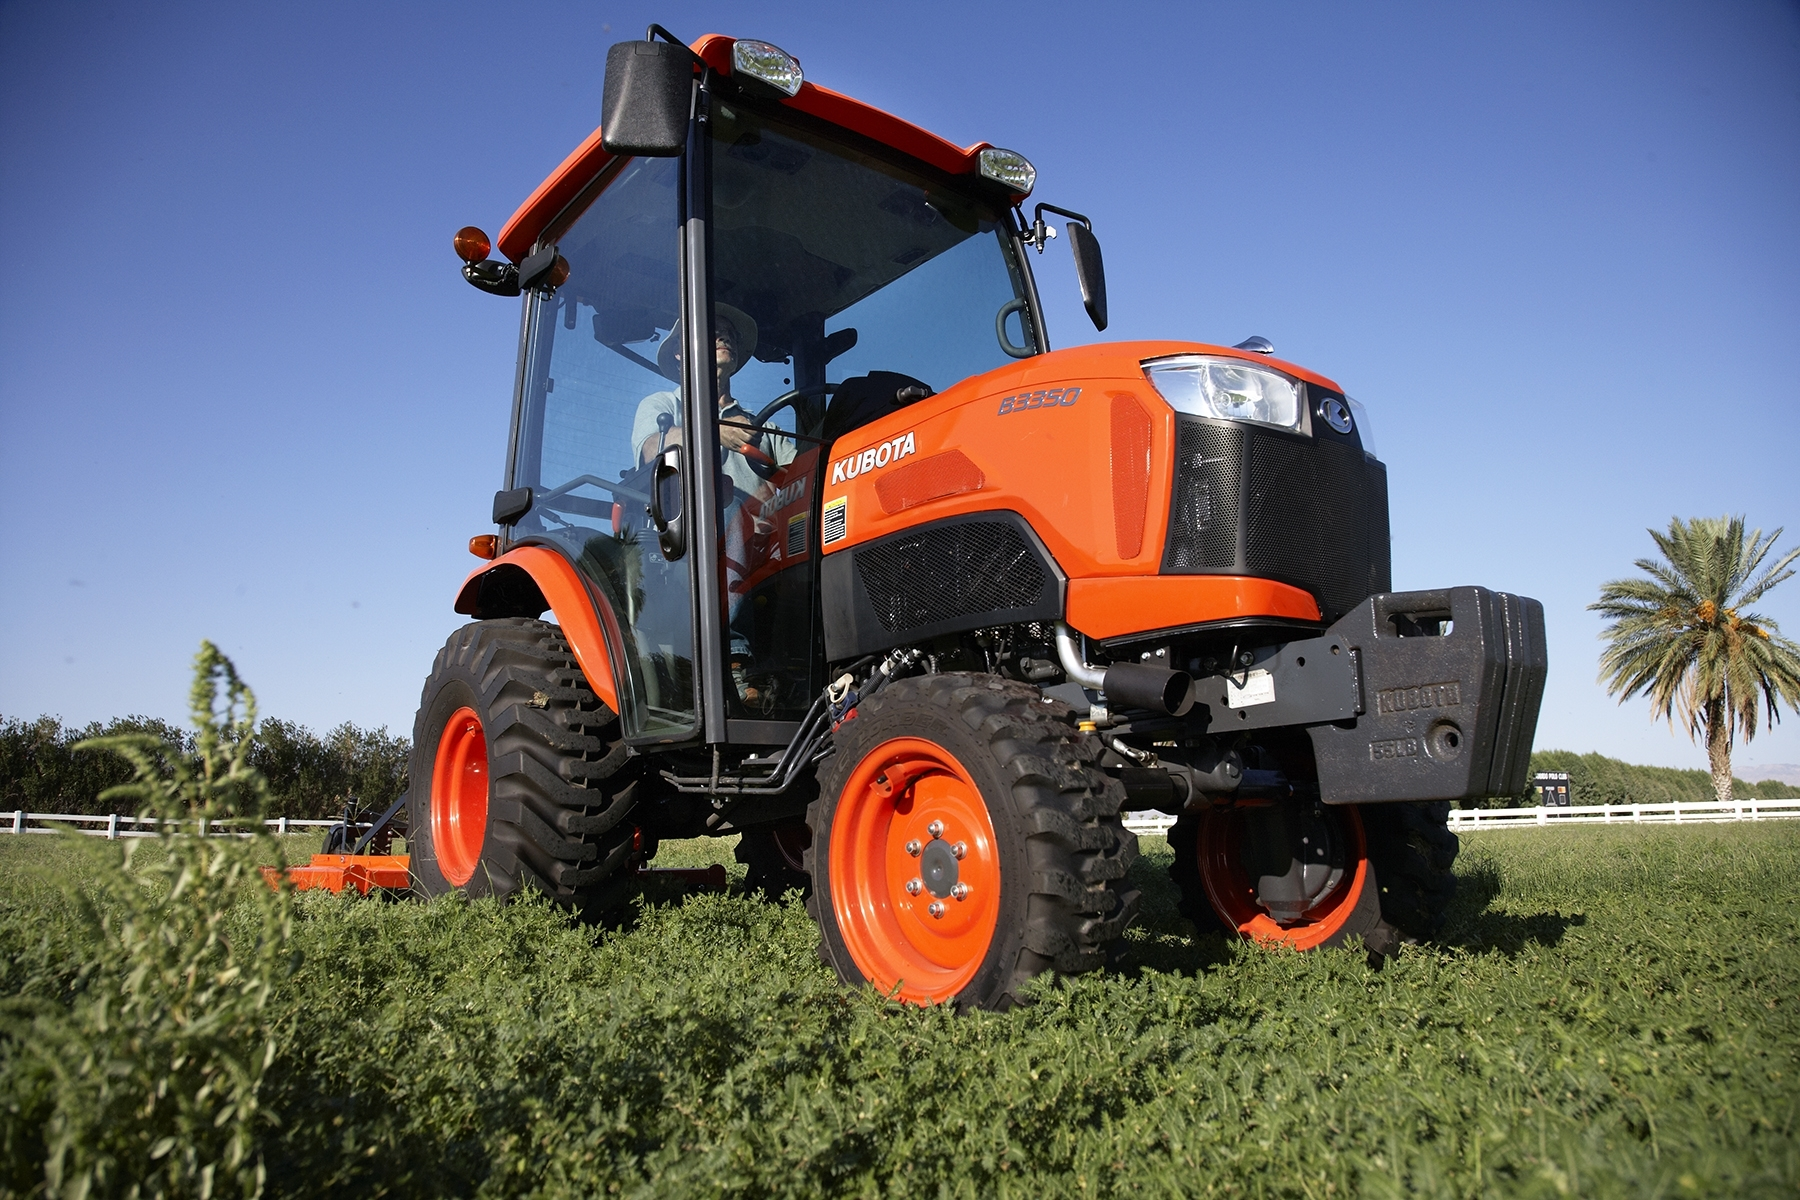 hight resolution of kubota unveils new b50 series tractors with factory integrated cabs ferrari electrical wiring diagram electrical wiring diagram kubota b2650